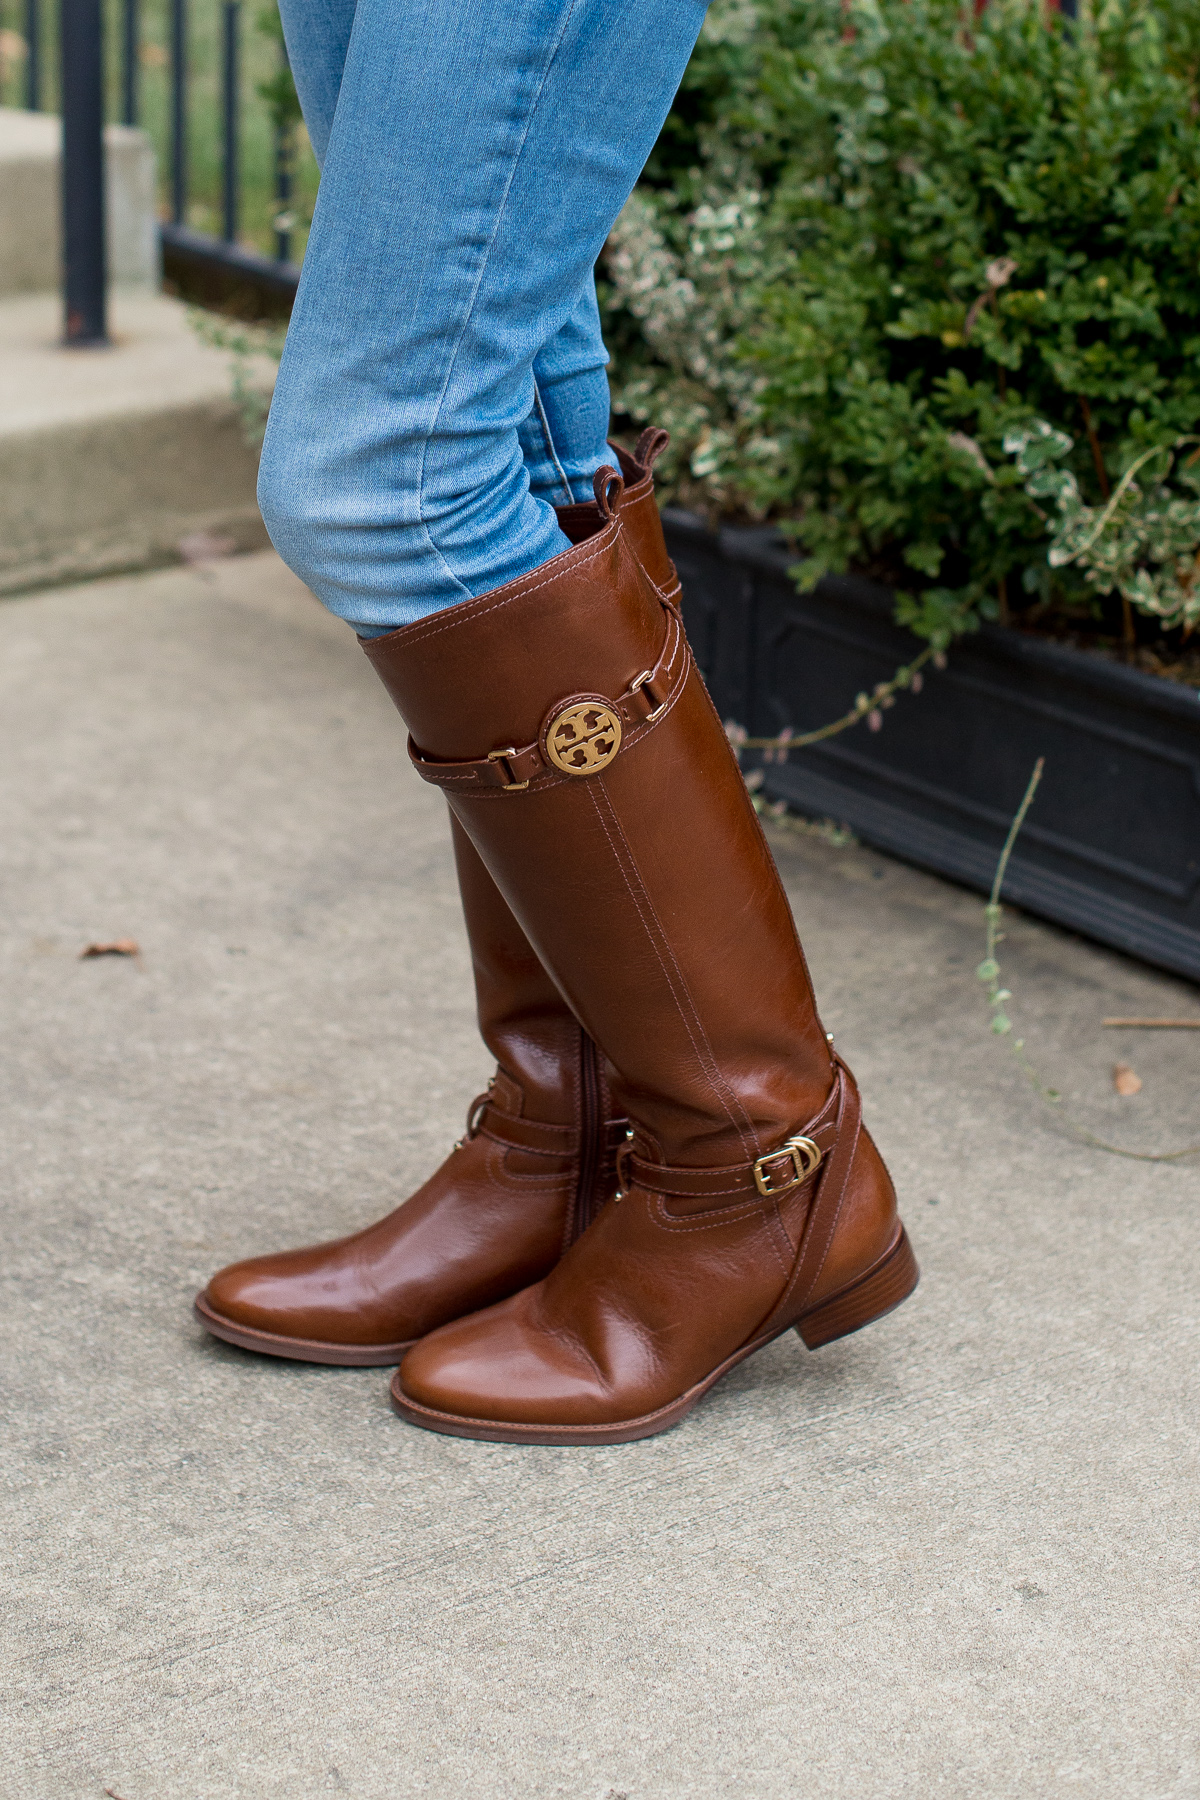 Tory Burch Almond Boots-16